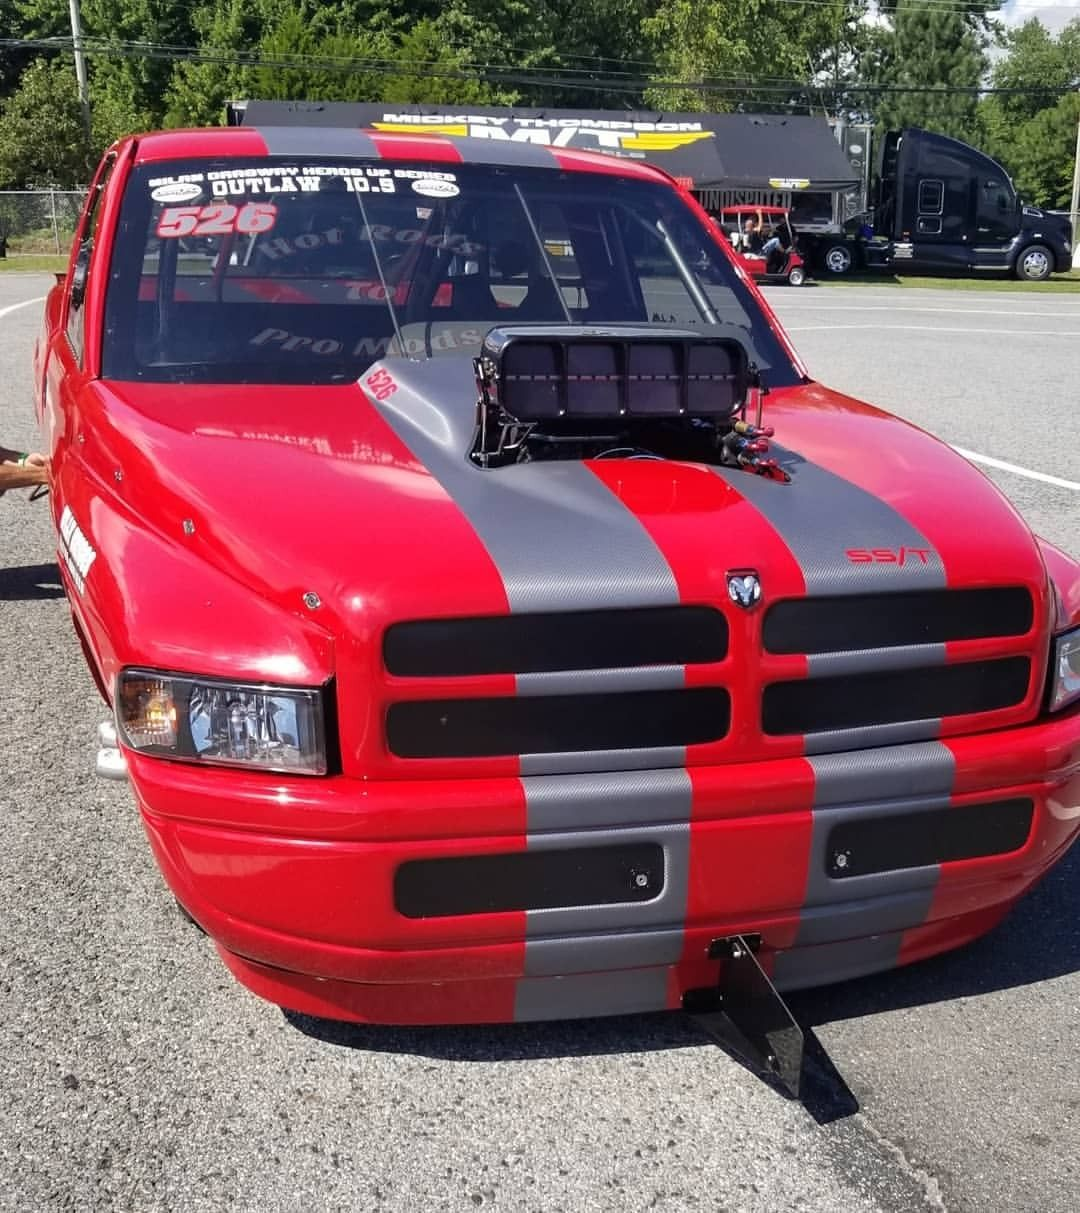 Chris Cadotto S 1997 Dodge Ram Yellowbullet Nationals 2018 Hotrodstopromods Doorwarz Car Carlifestyle Cars Dodge Classic Cars Best Muscle Cars